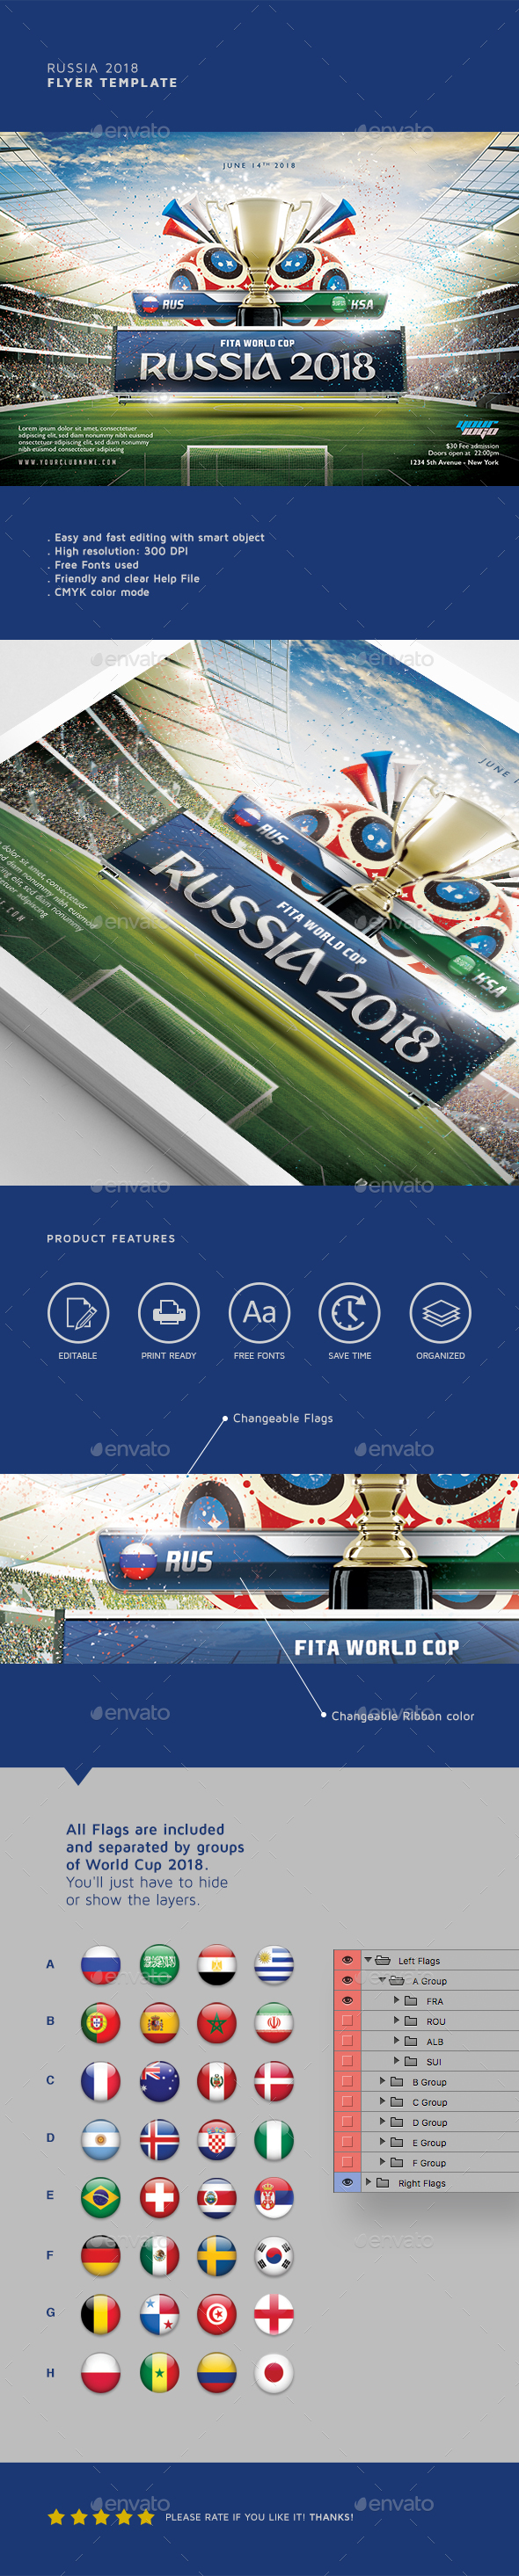 Russia 2018 Flyer Template - Sports Events